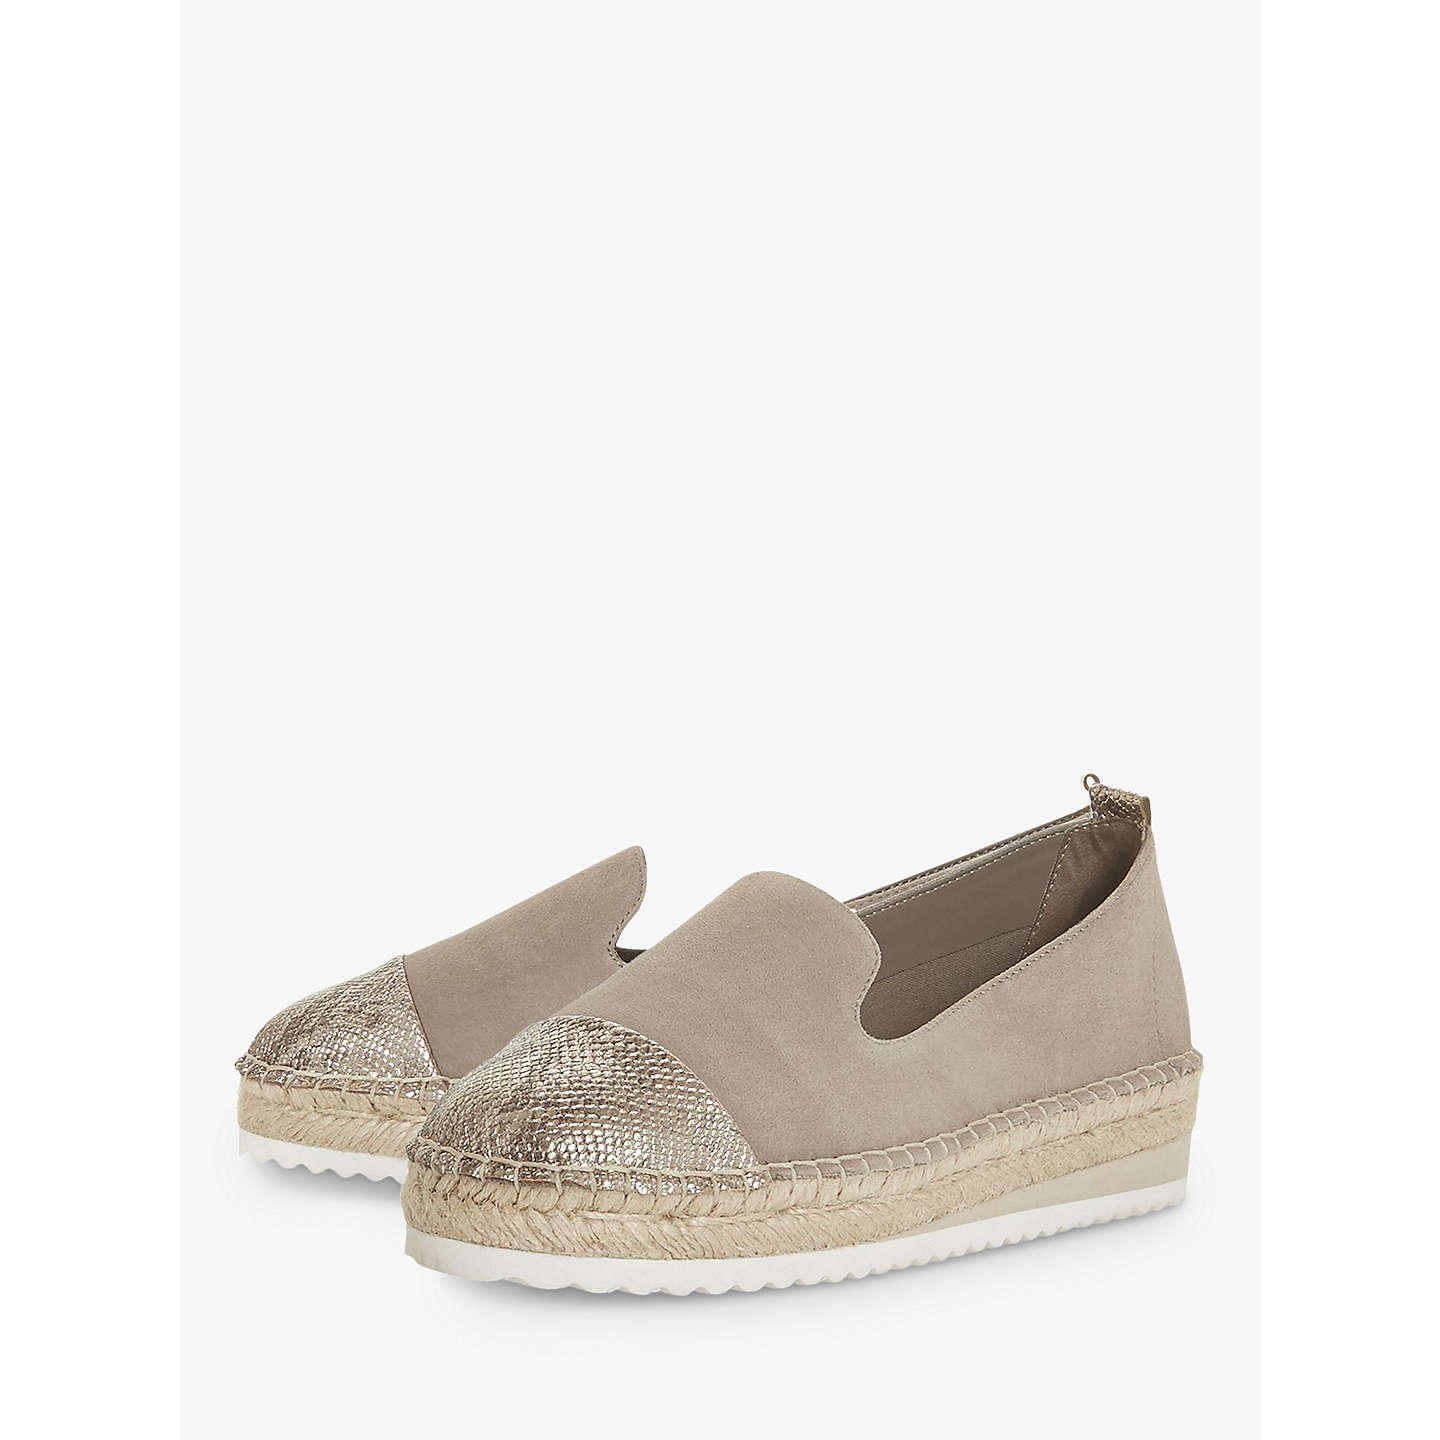 Clearance Store Online Dune Gavi Contrast Toe Espadrilles Free Shipping Professional Sast For Sale 4TGajY5n